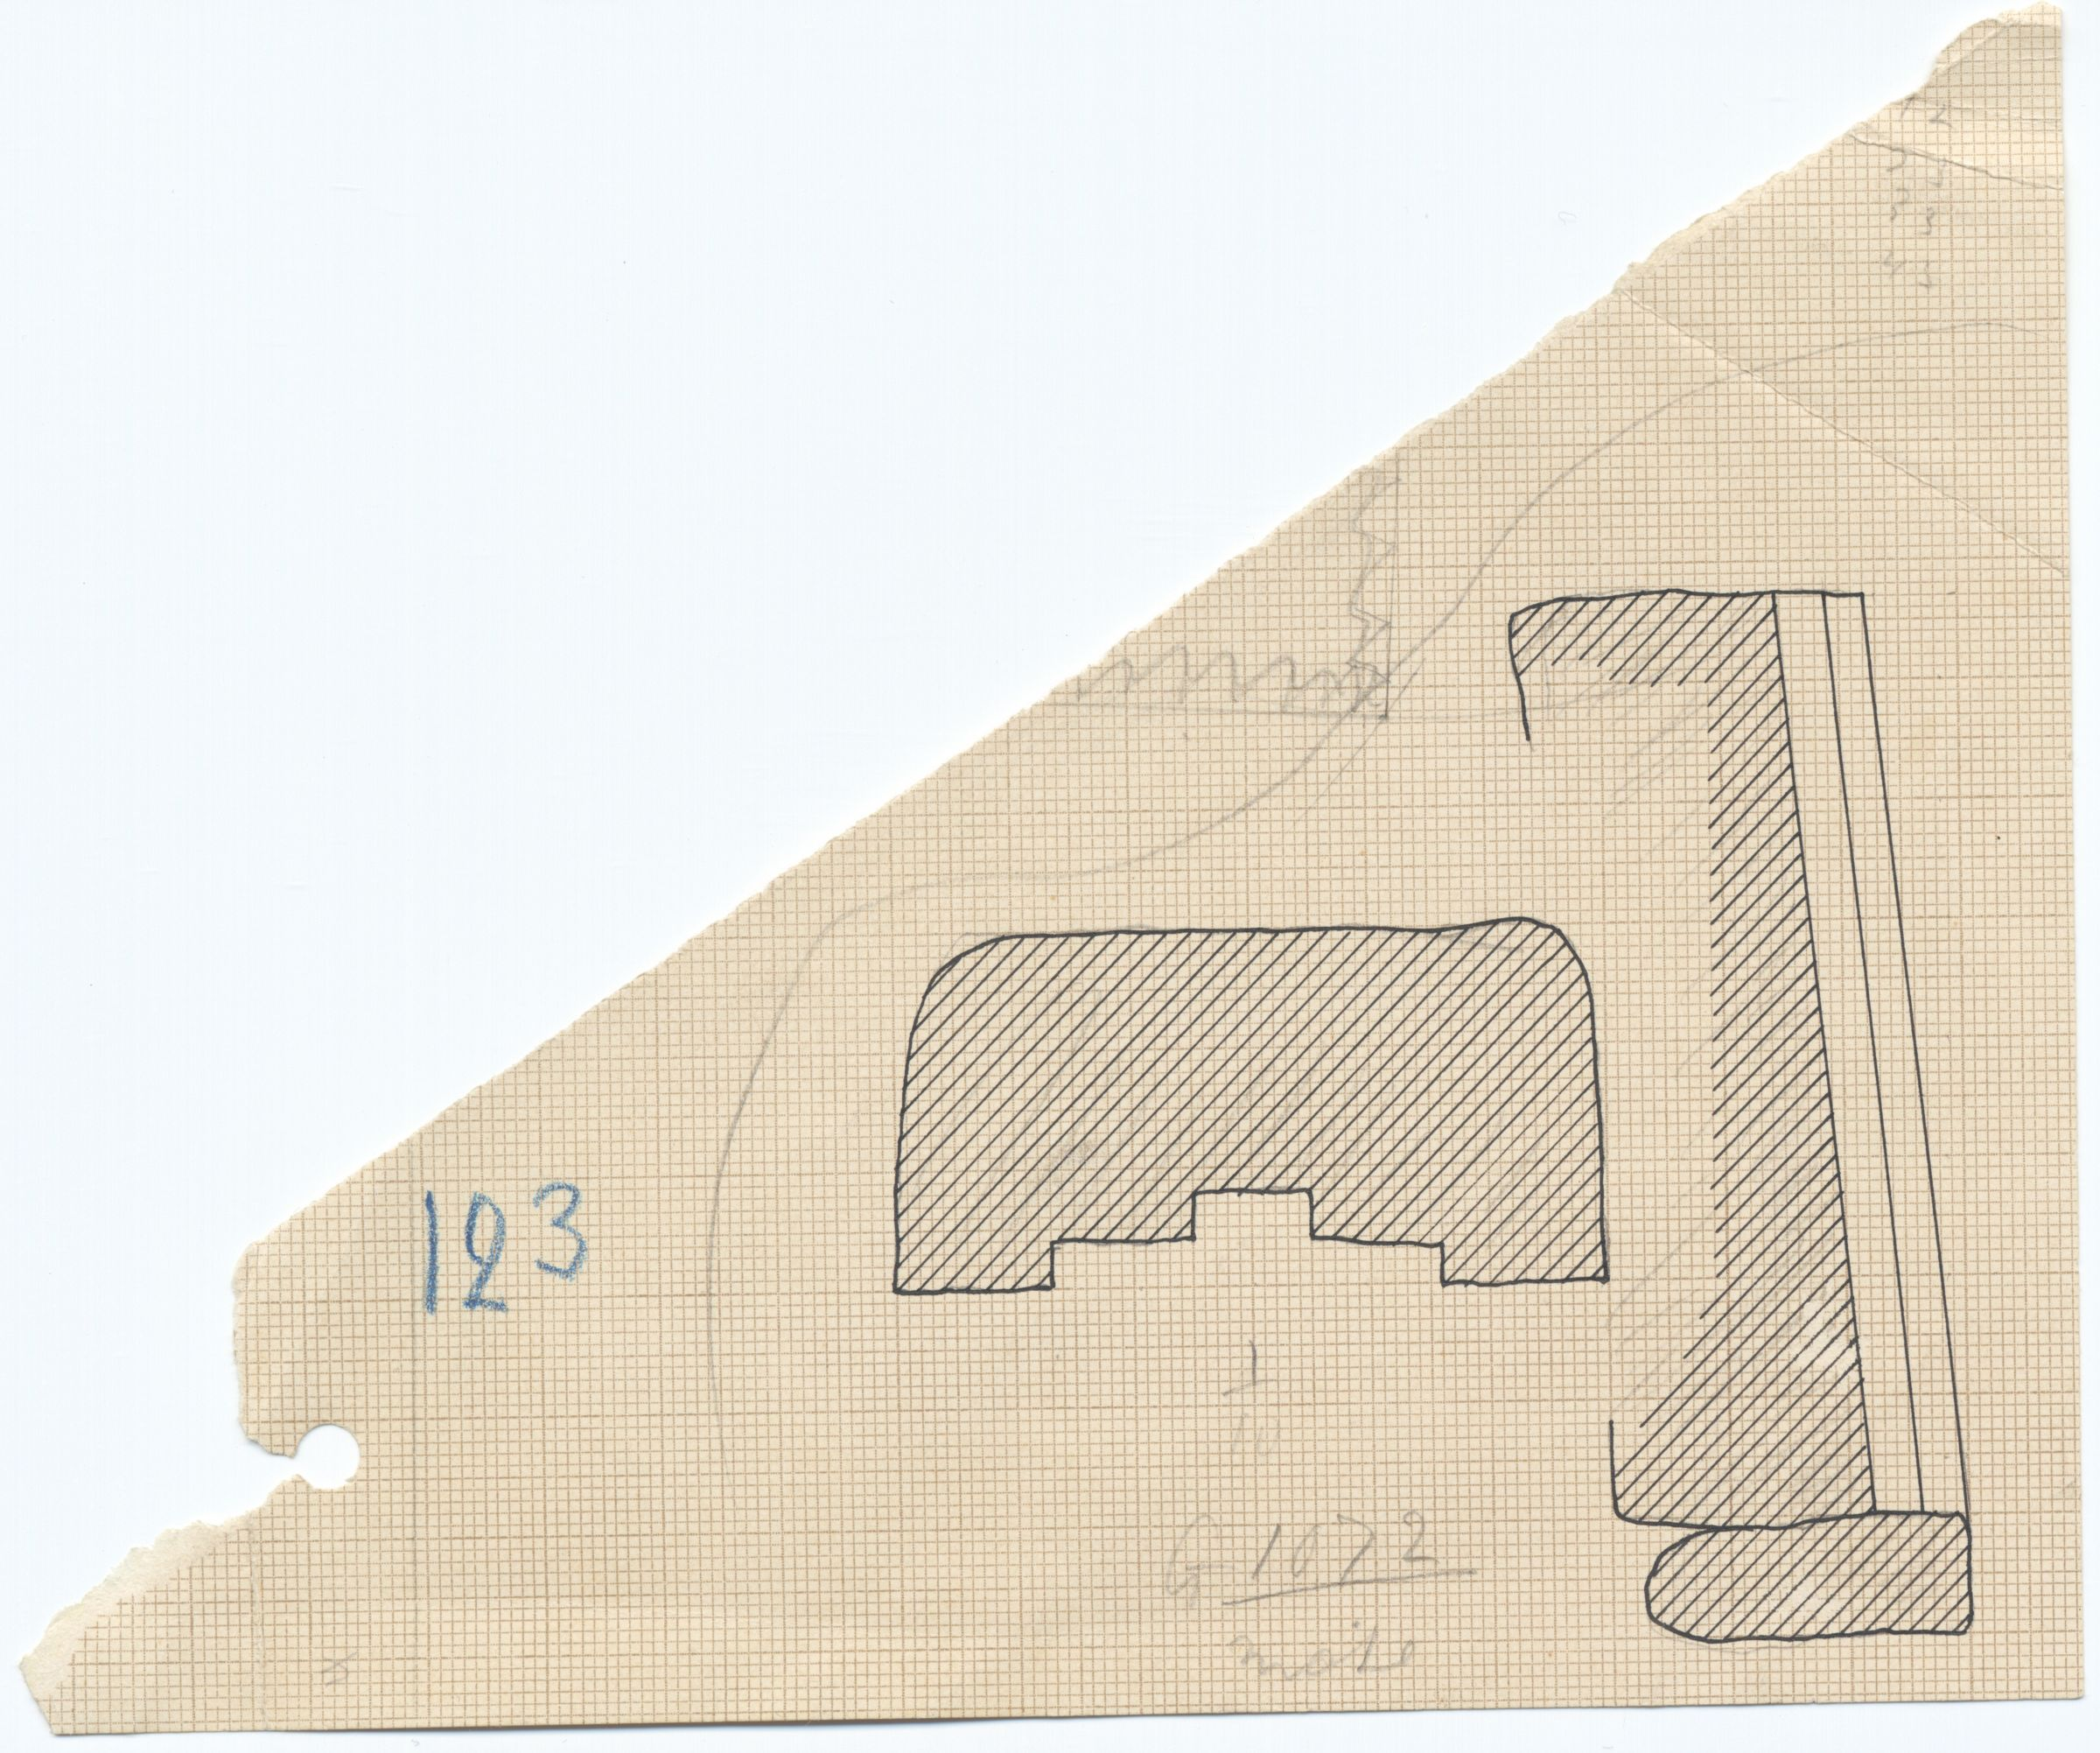 Maps and plans: G 1072, Plan and section of niche